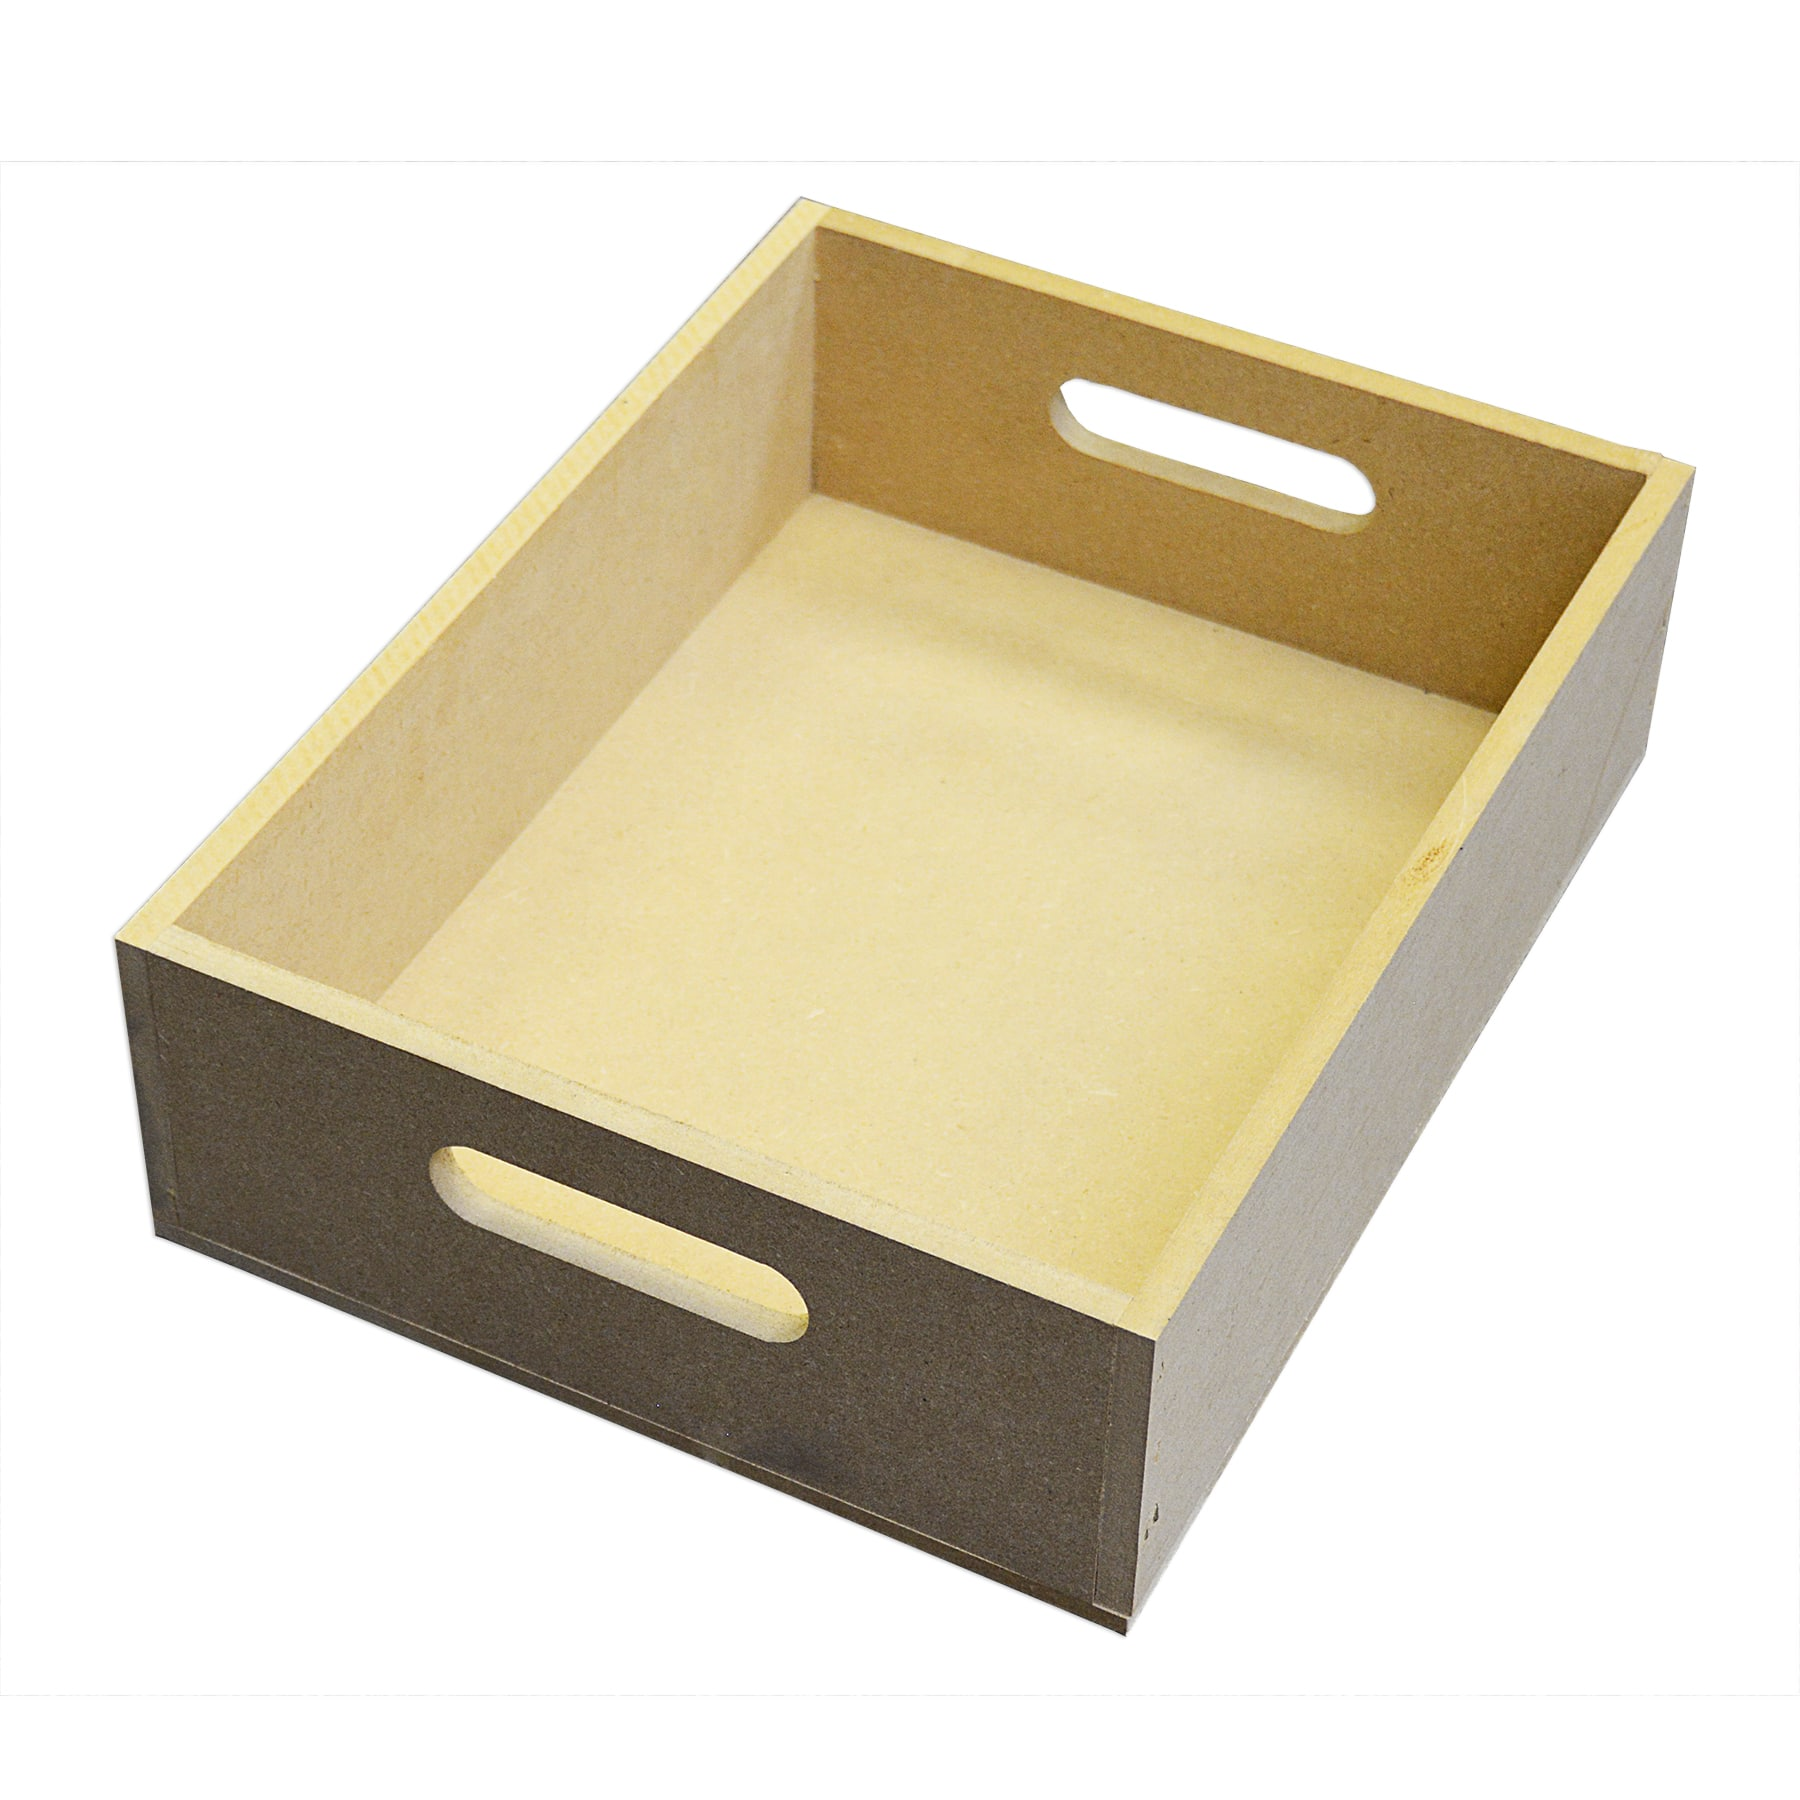 Mdf Wood Crate With Handles By Artminds®